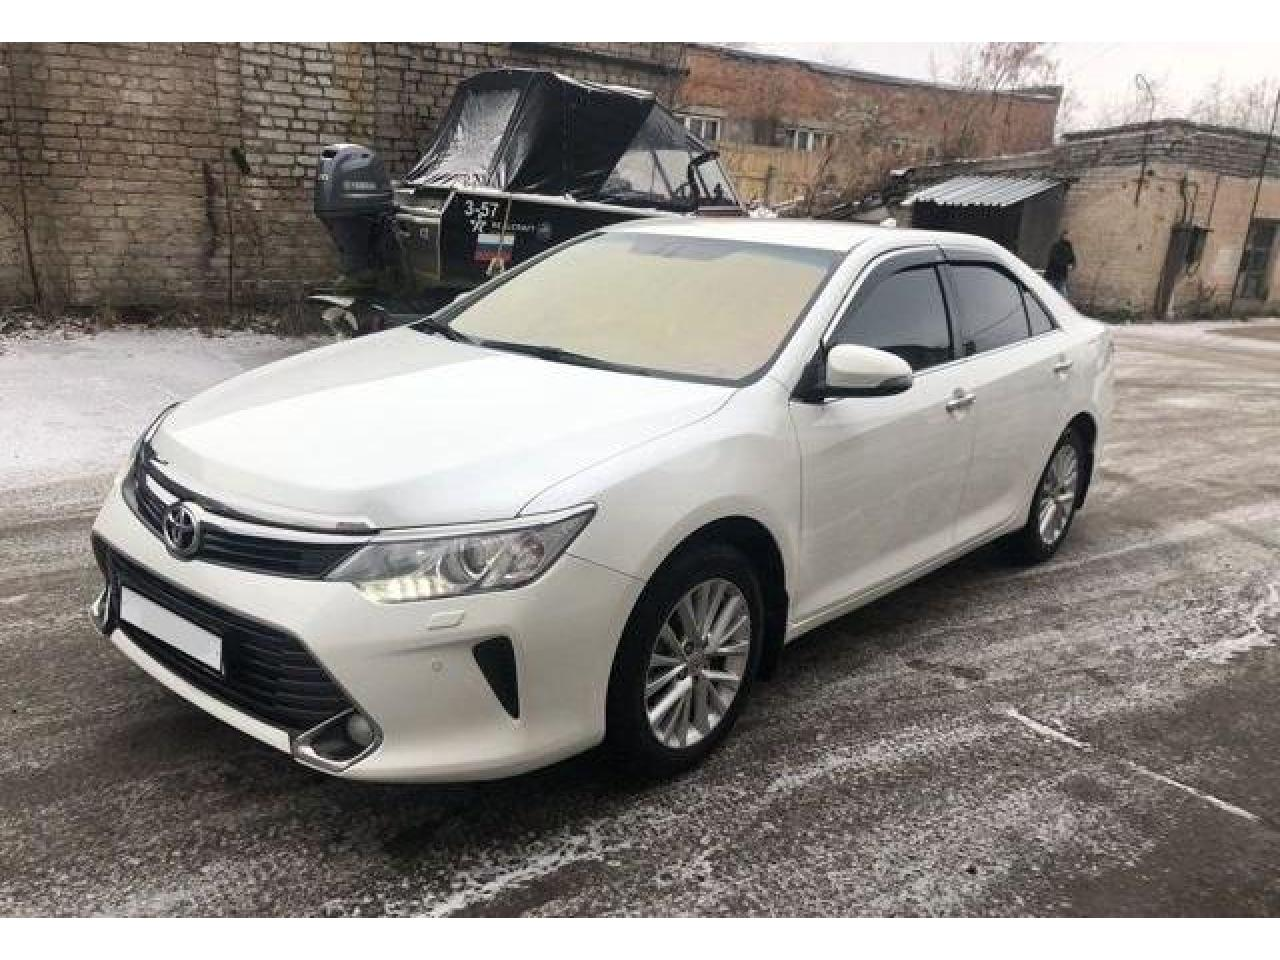 Toyota Camry, 2015 г. - 1/3